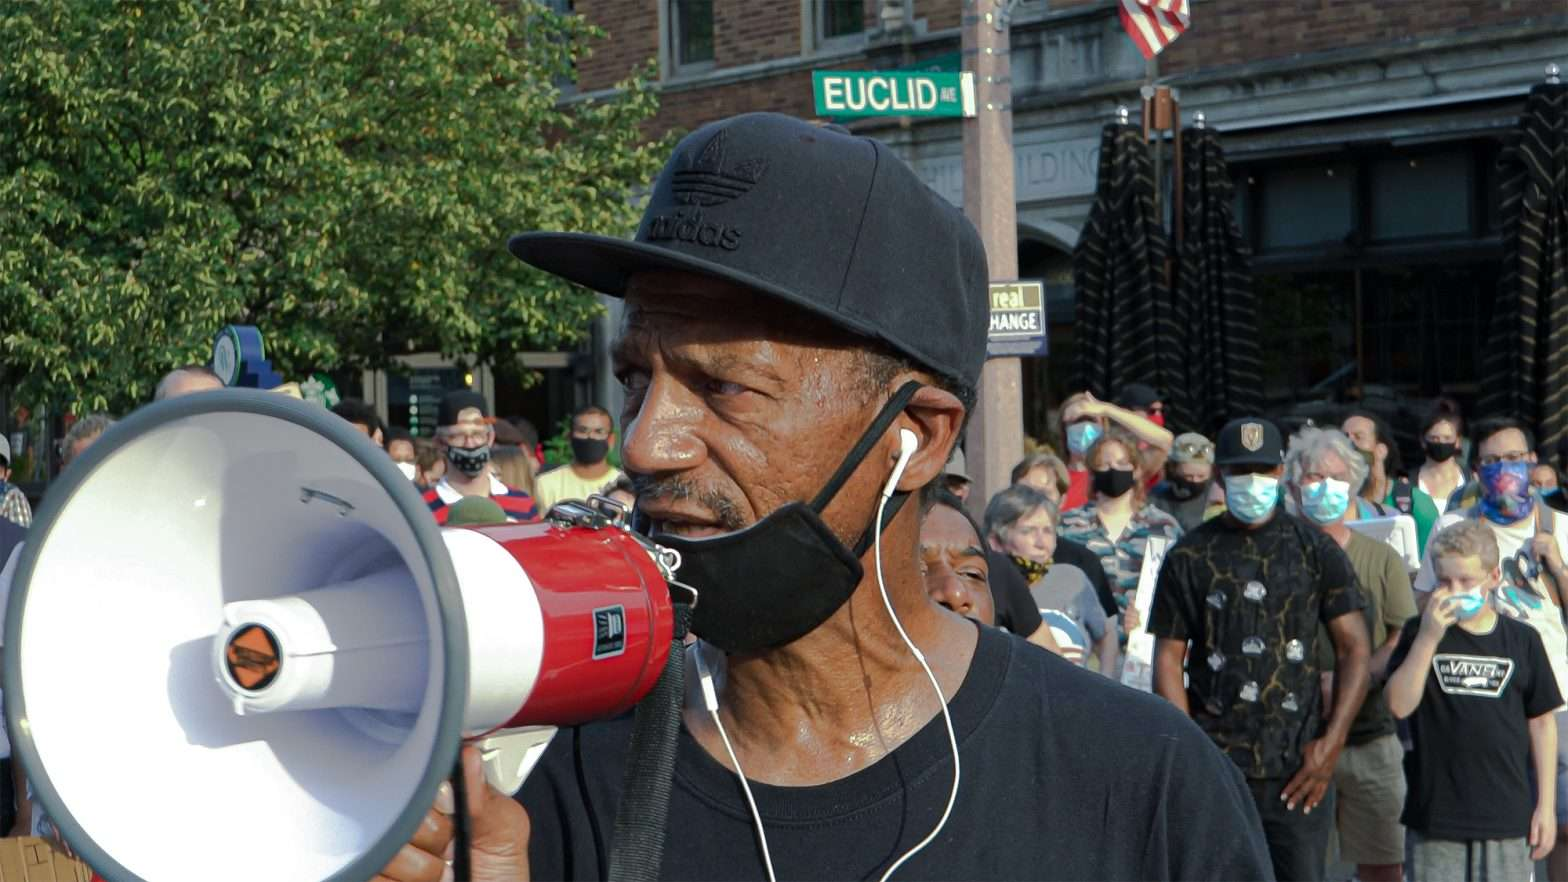 Reverend Darryl Gray protest with ExpectUs in the Central West End neighborhood in St Louis.